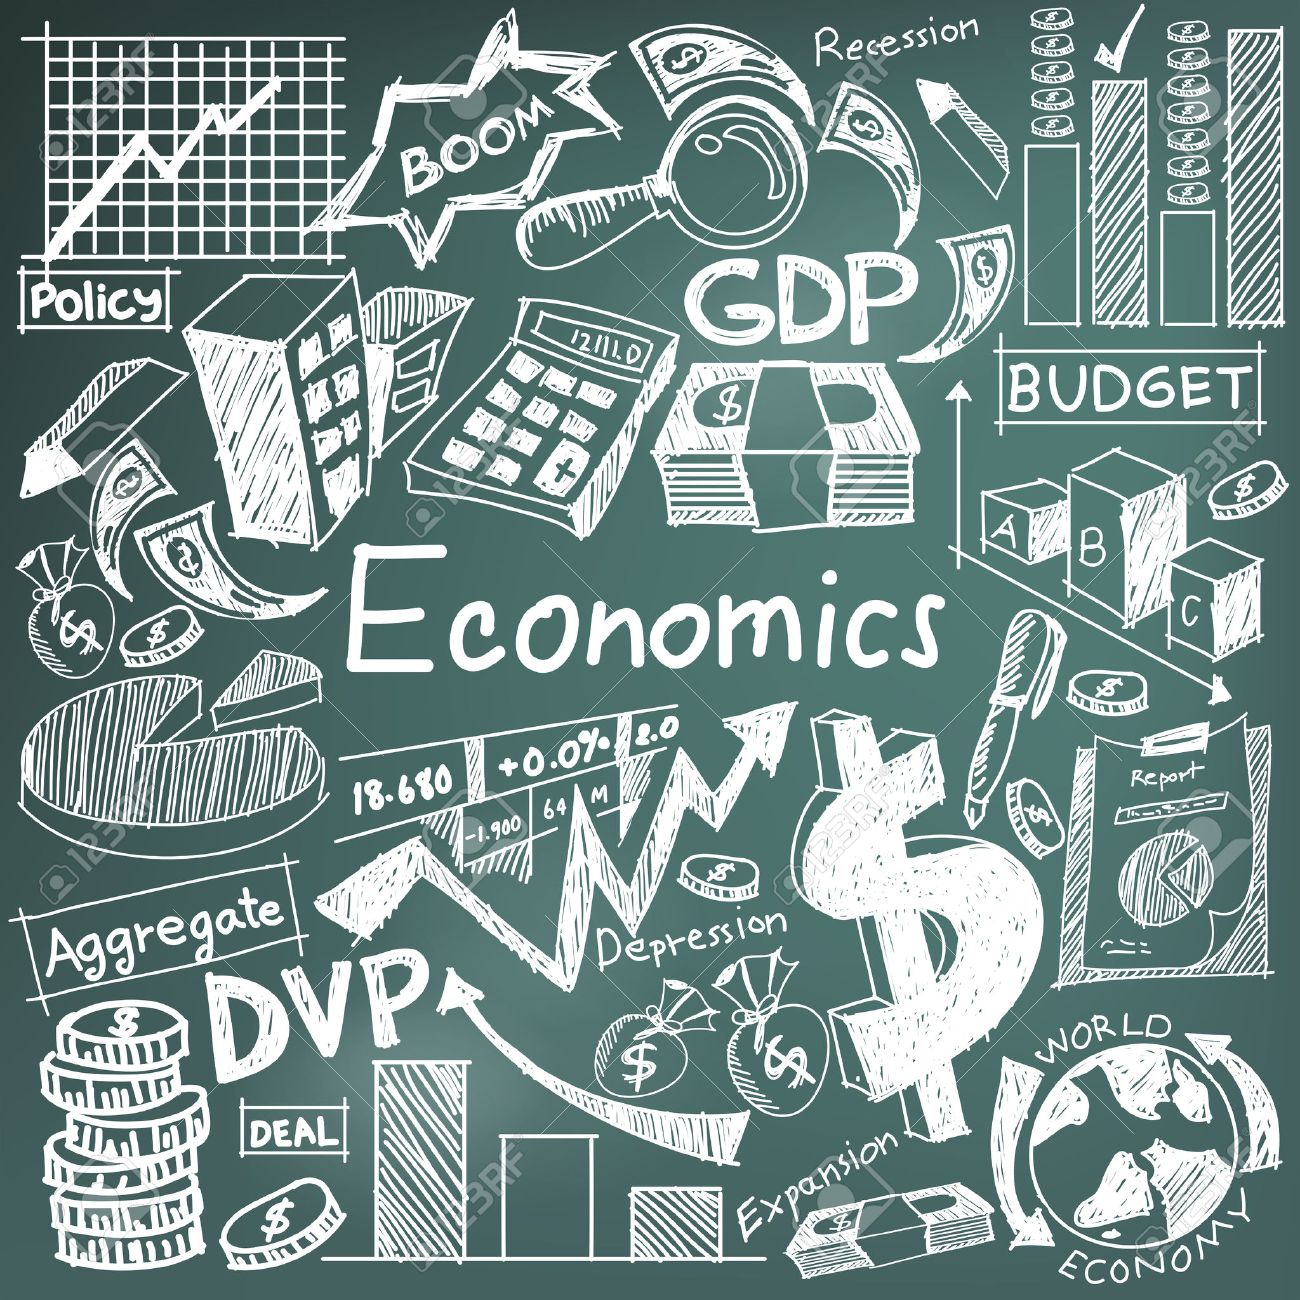 Economics and financial education chalk handwriting doodle icon of banknote, money currency, investment profit graph, and cost analysis sign and symbol in blackboard background used for presentation title with header text, create by vector - 51519619